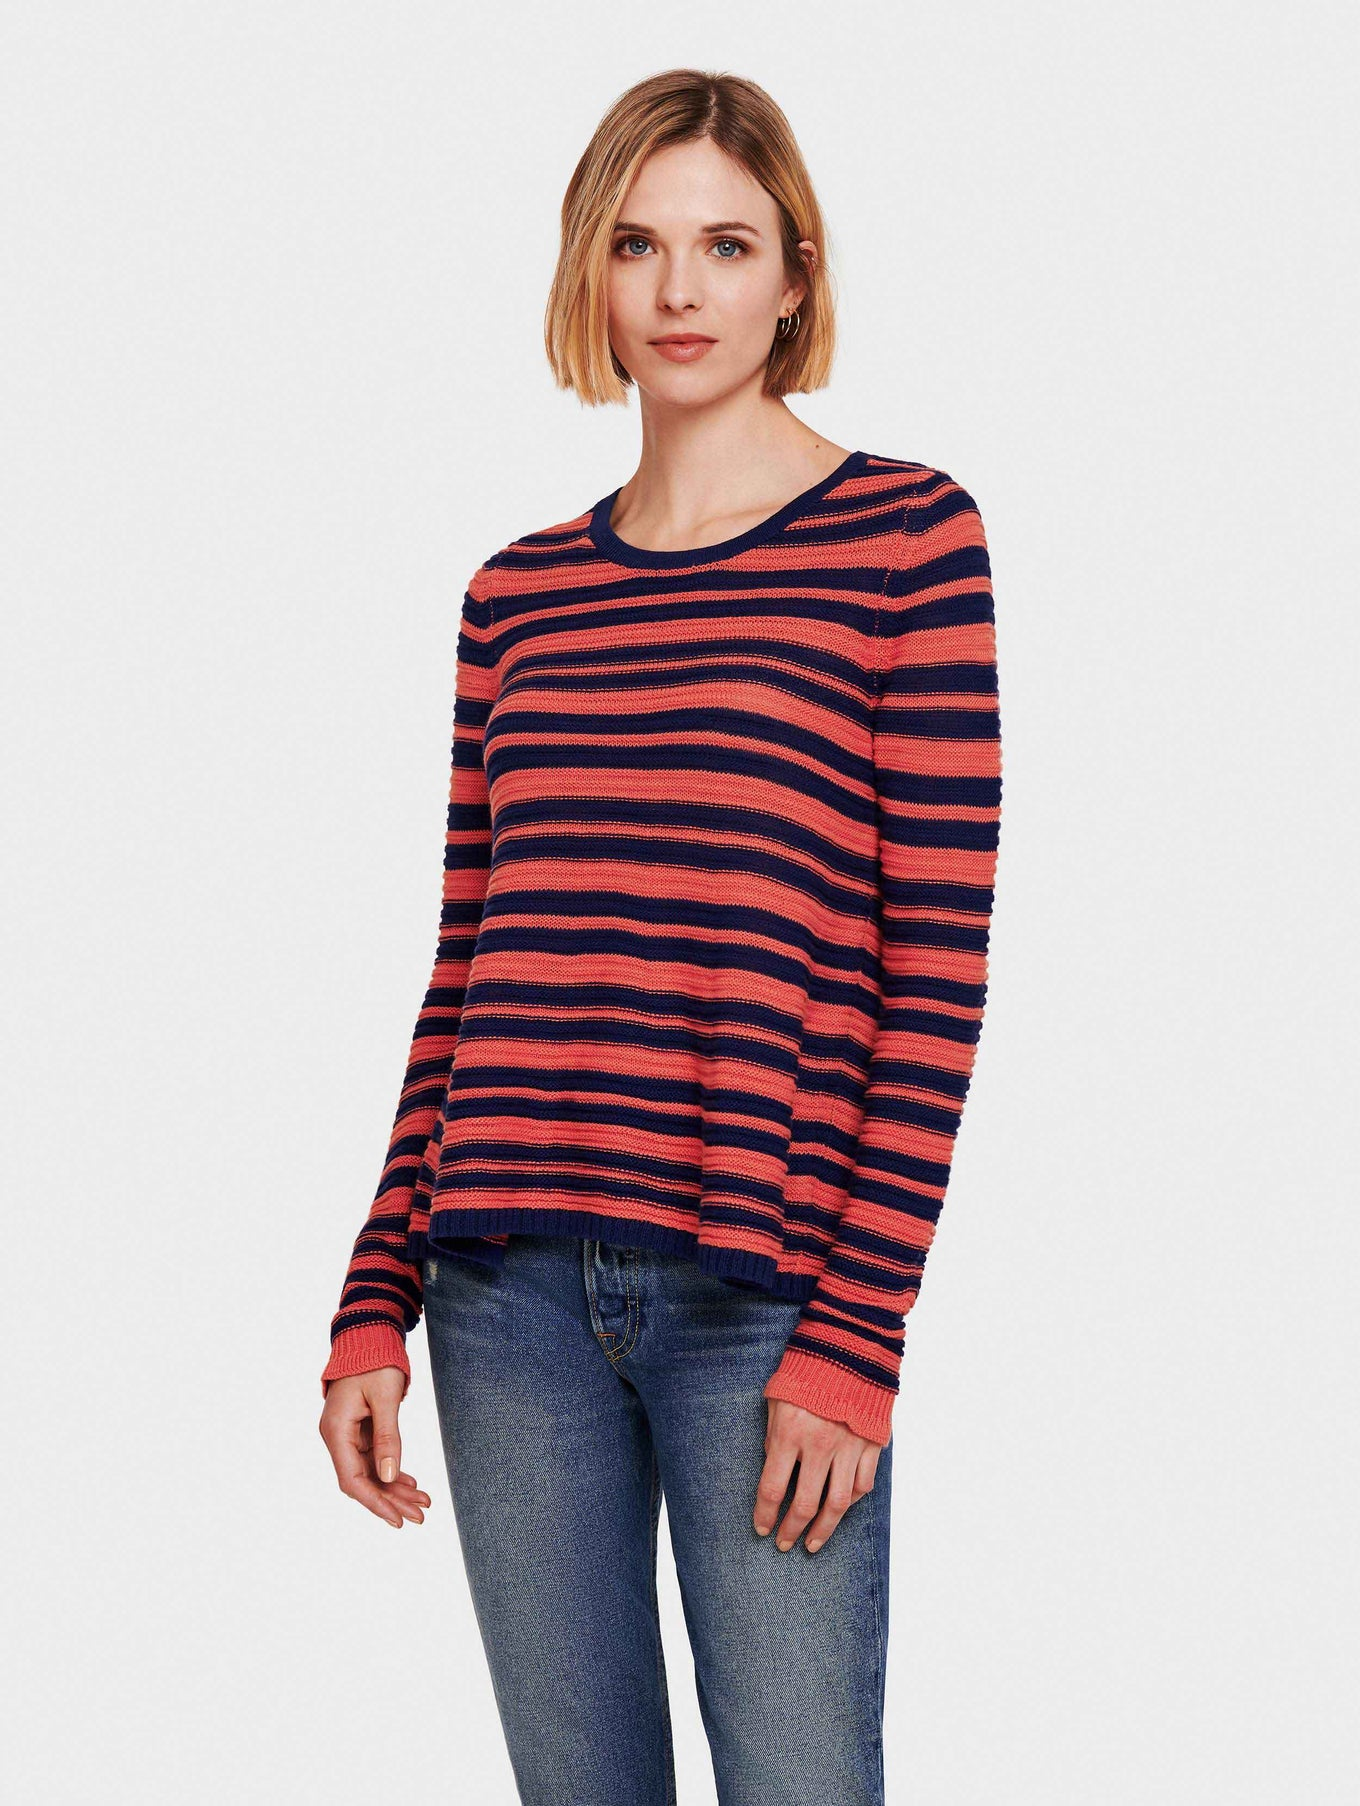 Cotton Slub Striped Swing Open Crewneck - Ocean/Rose - Image 2